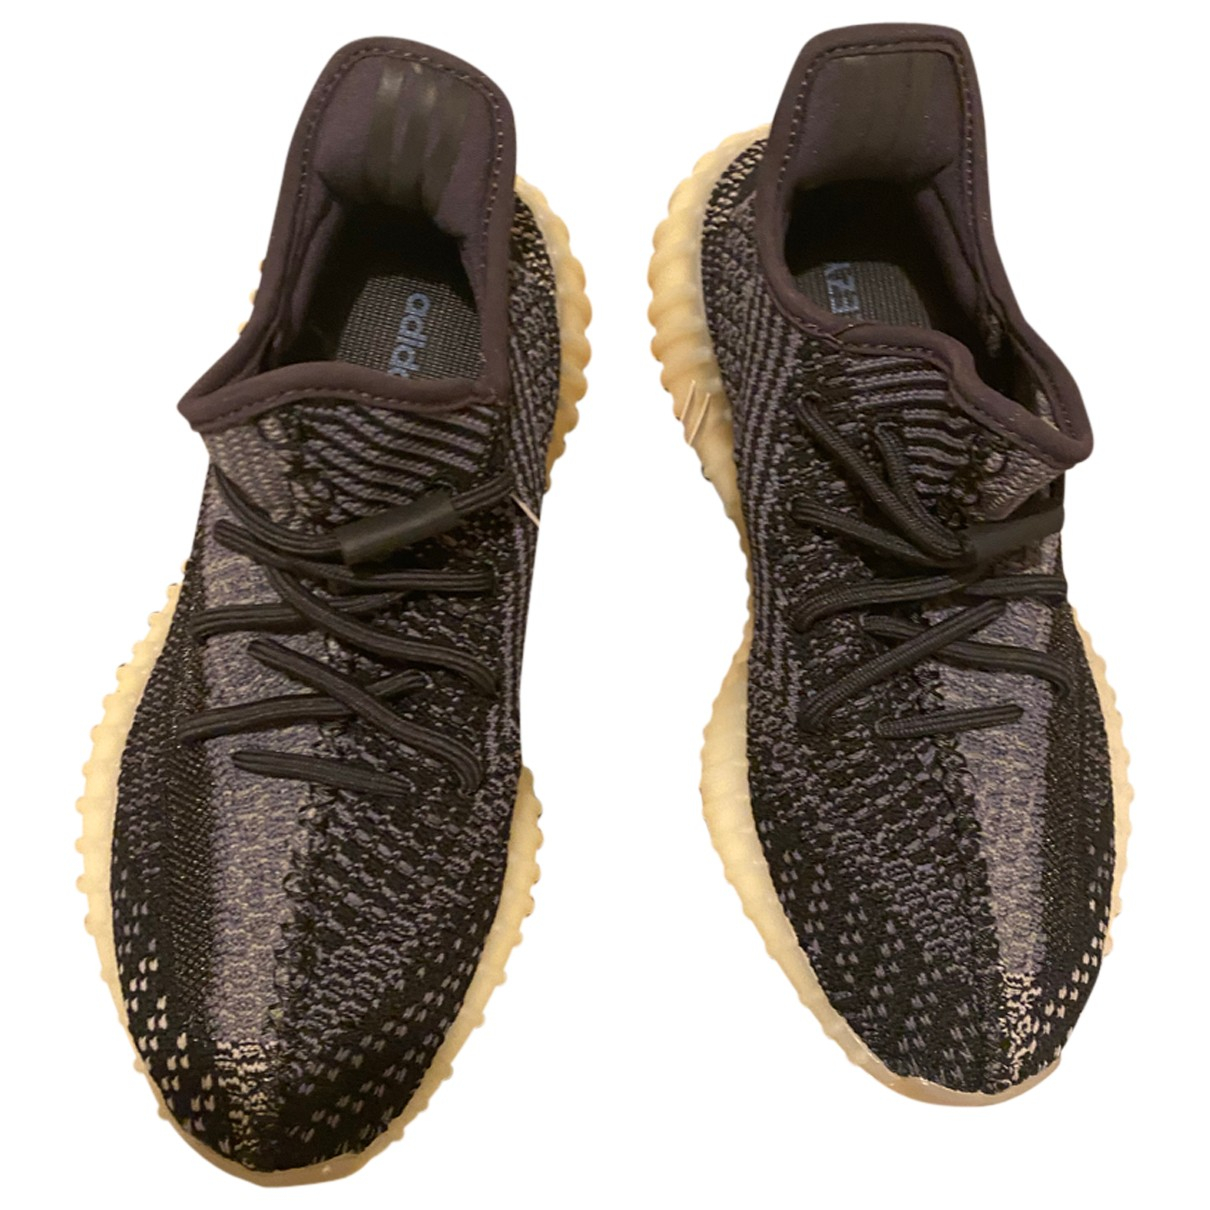 Yeezy X Adidas Boost 350 V2 Cloth Trainers for Women 5.5 UK